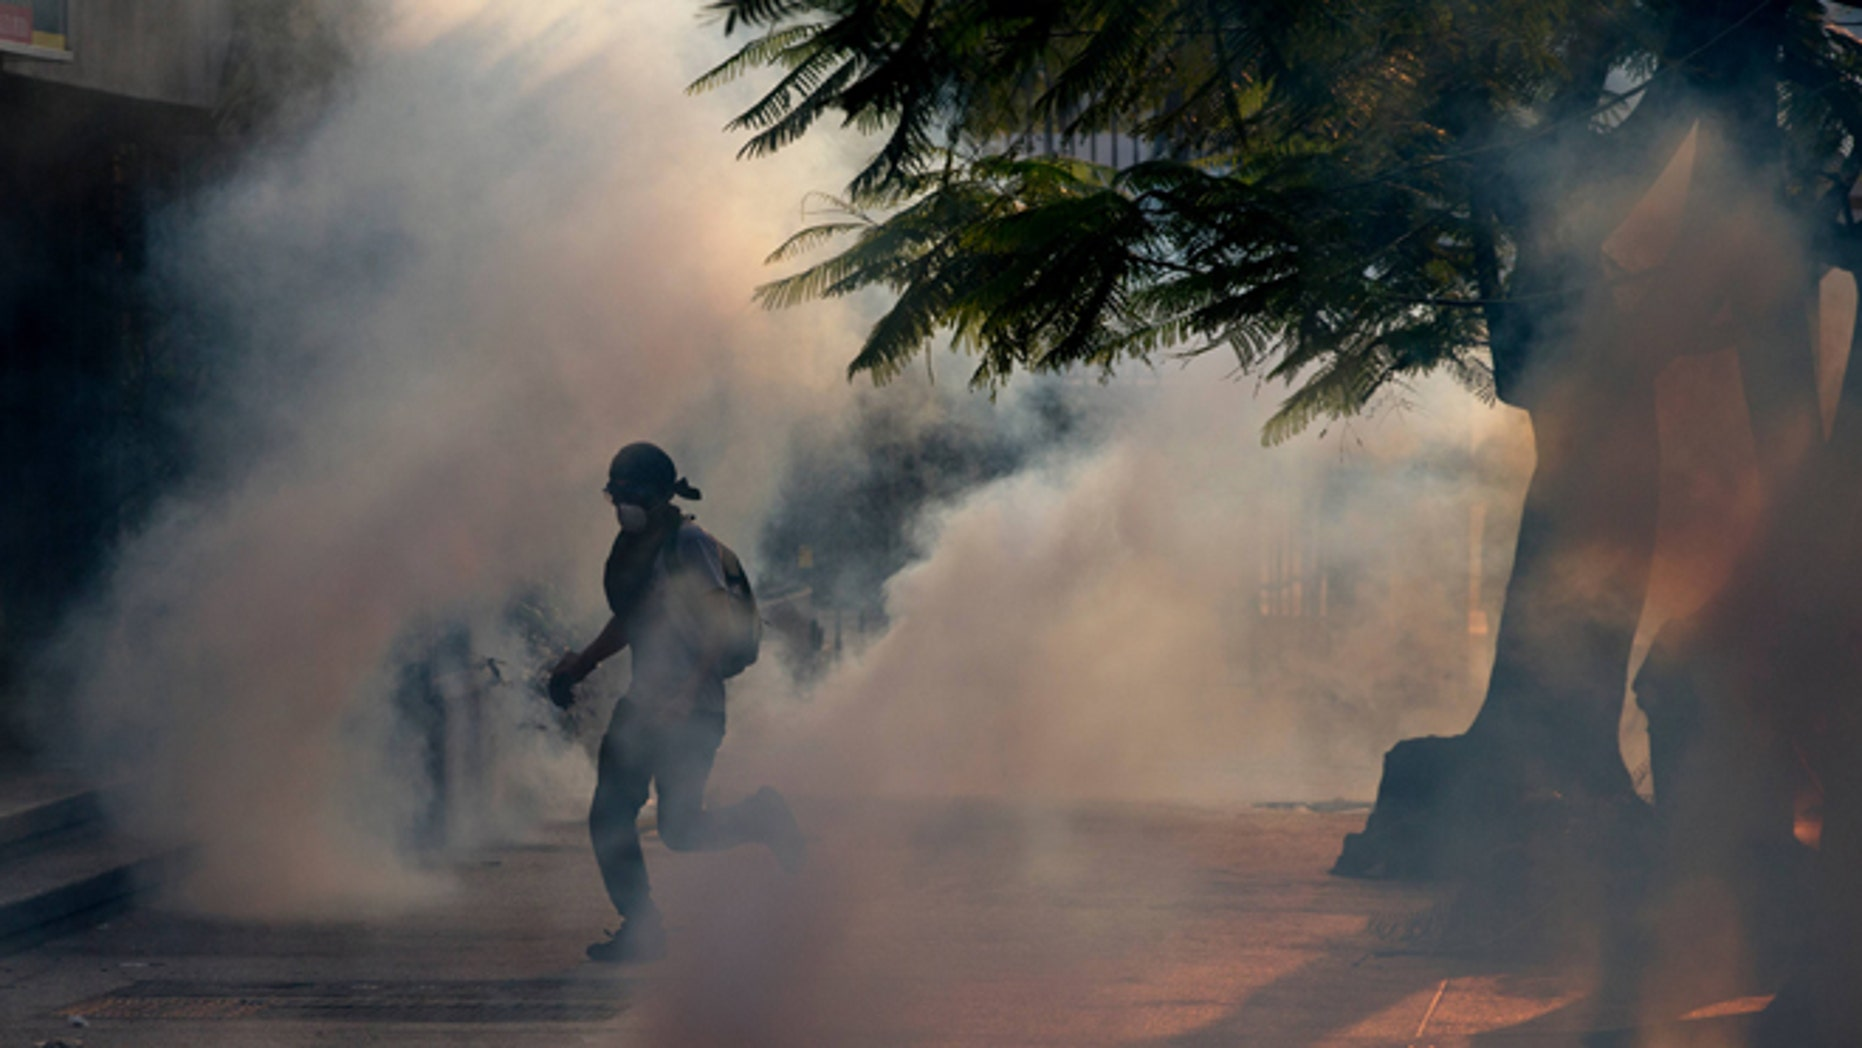 A demonstrator take cover from tear gas fired by Bolivarian National police during clashes with anti-government protesters in Caracas,Venezuela, Saturday, March 8, 2014. The Venezuelan government and opposition appear to have reached a stalemate, in which street protests continue almost daily while the opposition sits out a peace process it calls farcical. (AP Photo/Fernando Llano)